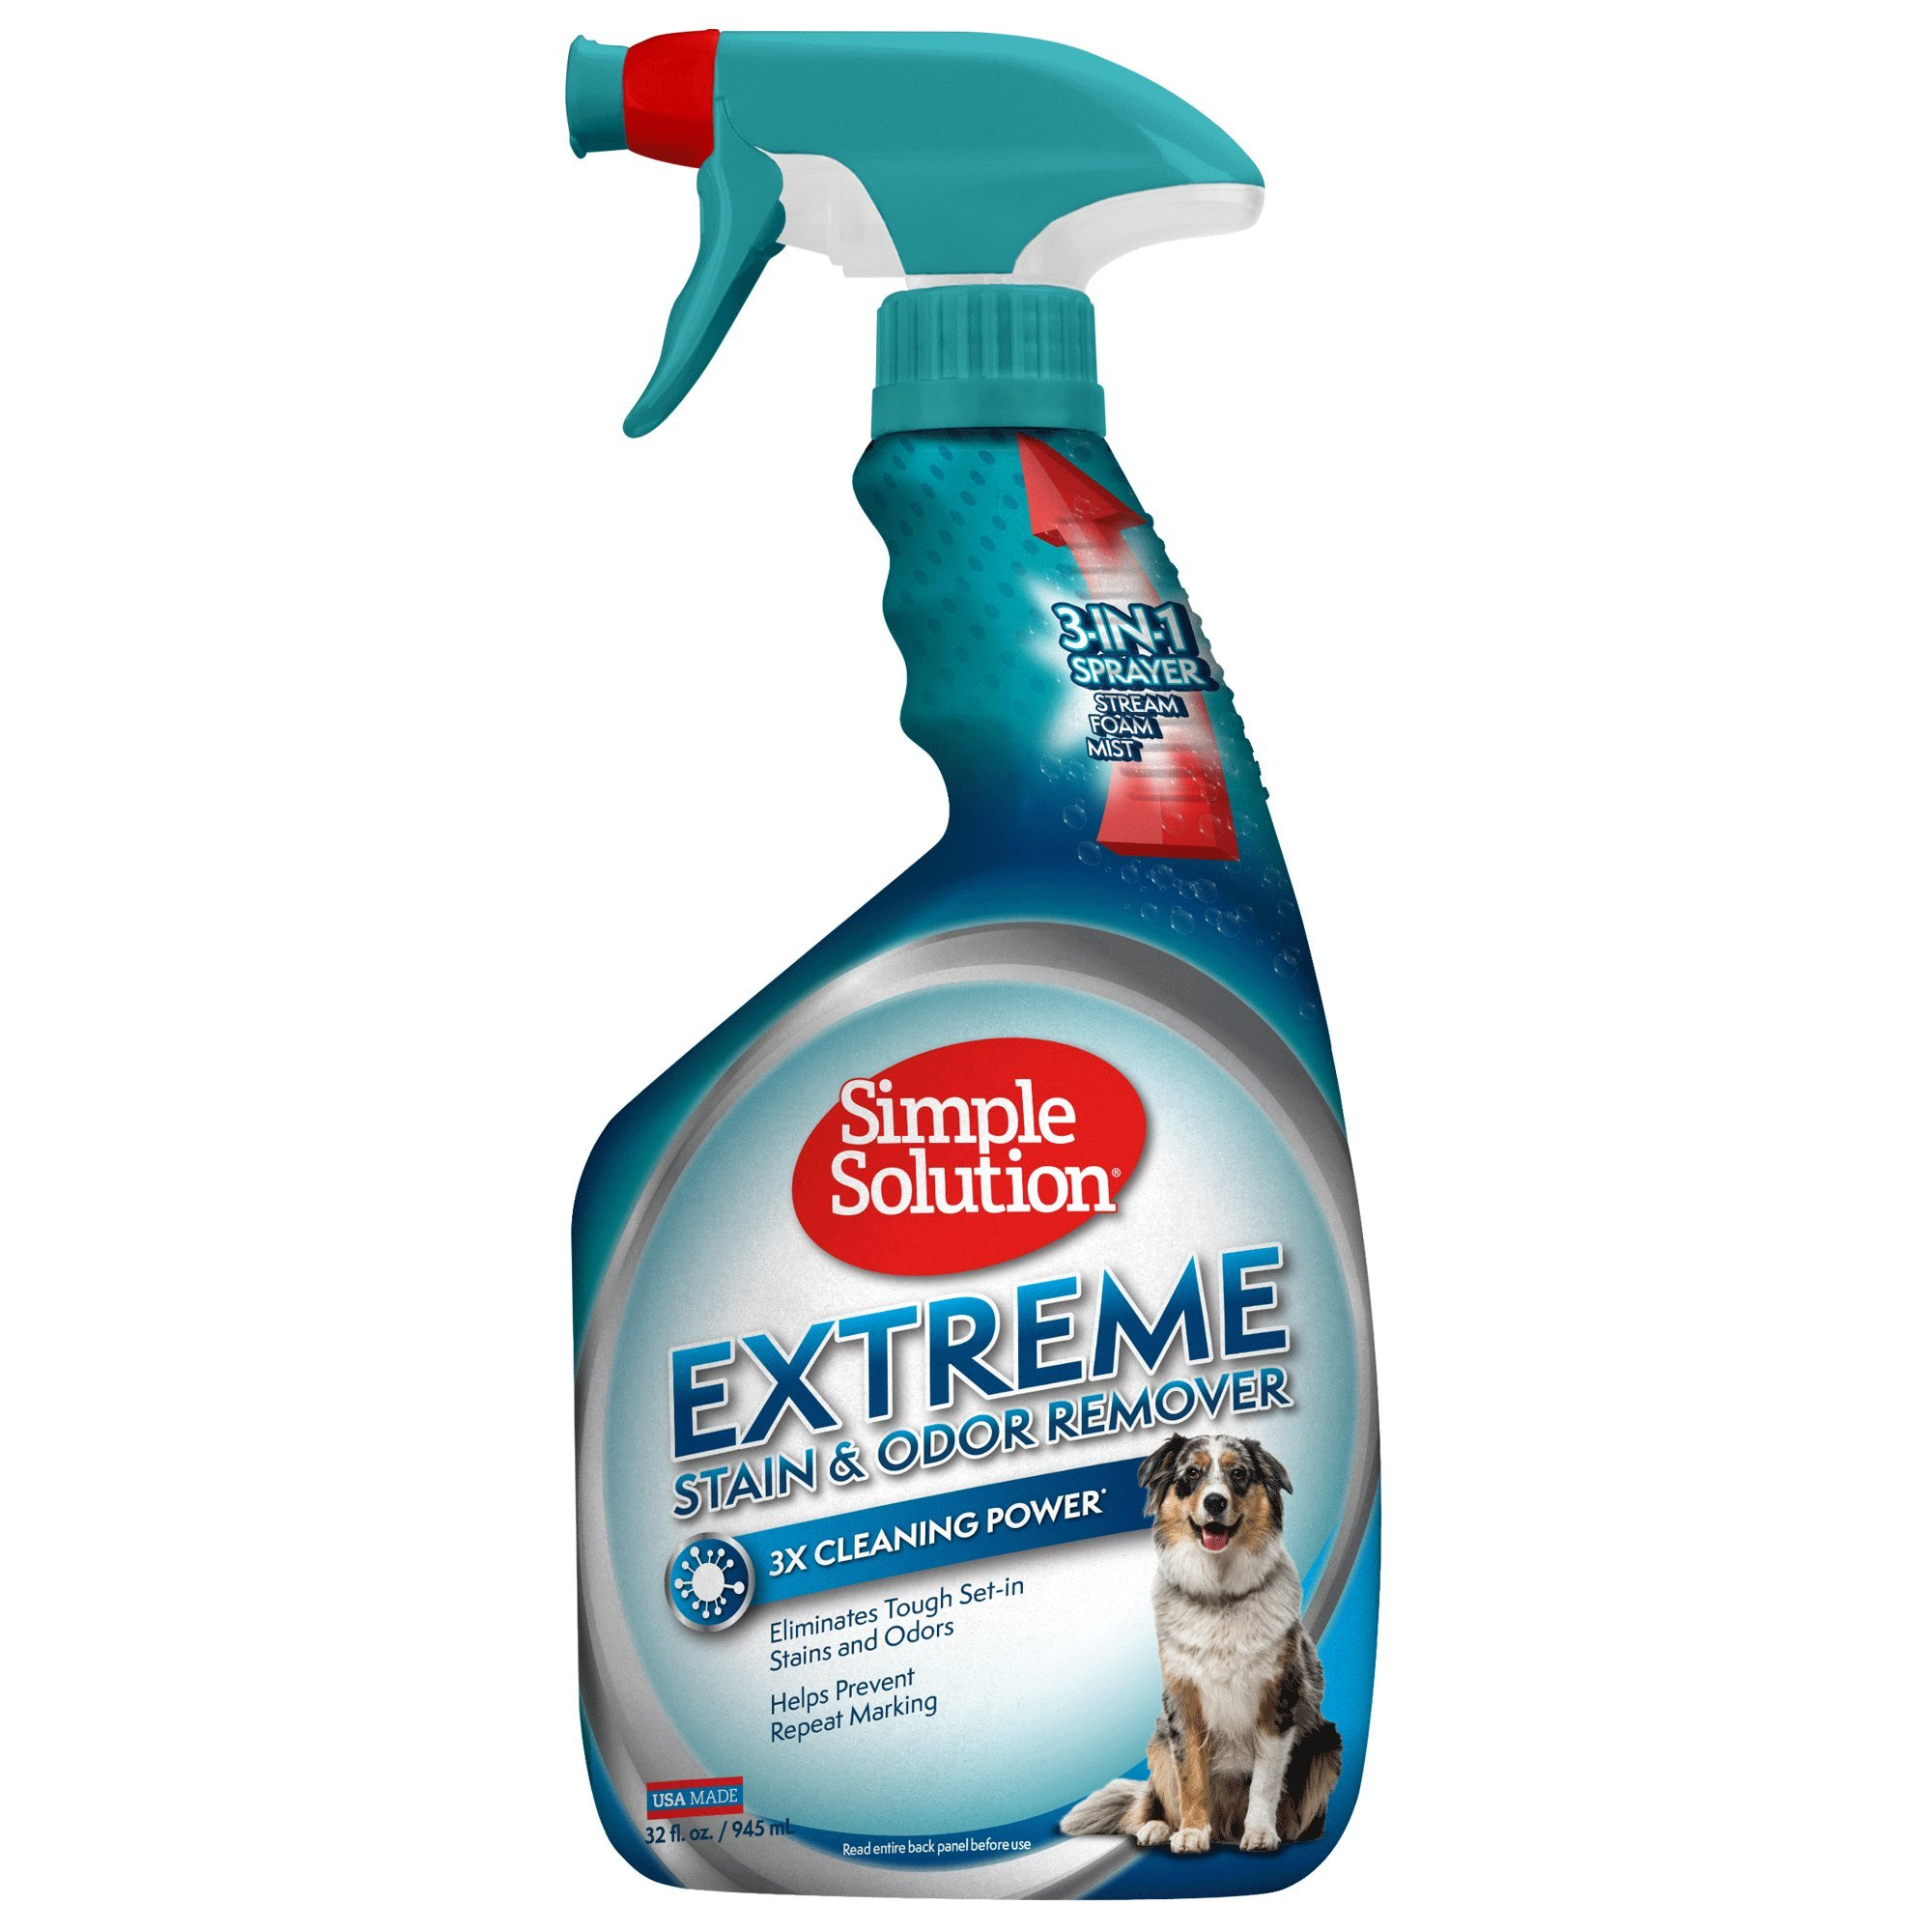 Simple Solution Enzymatic Pro Bacteria Cleaning